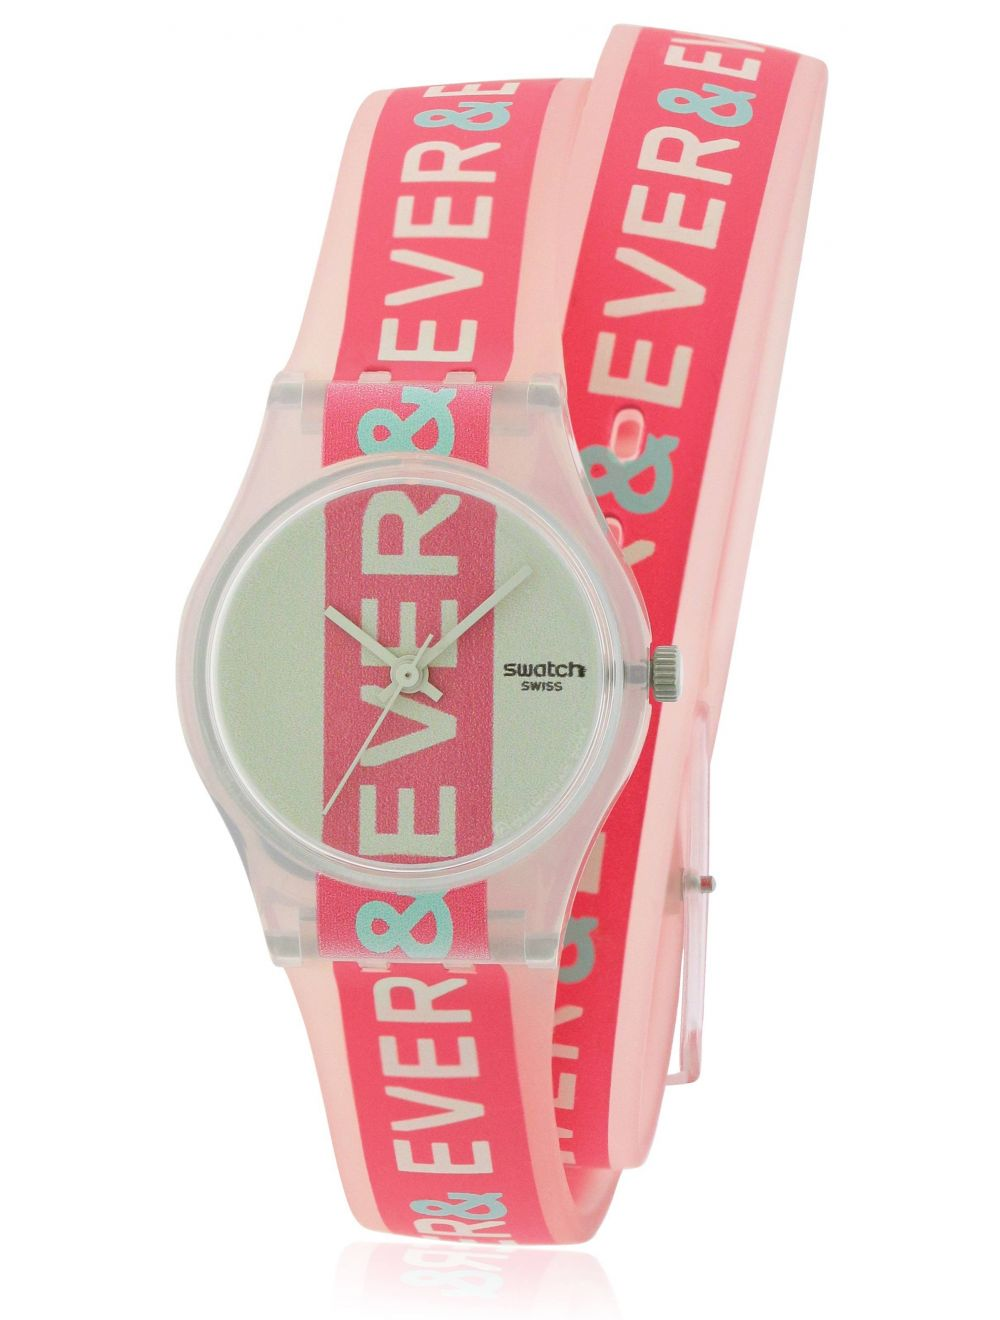 Genskie_chasy_Swatch (39)